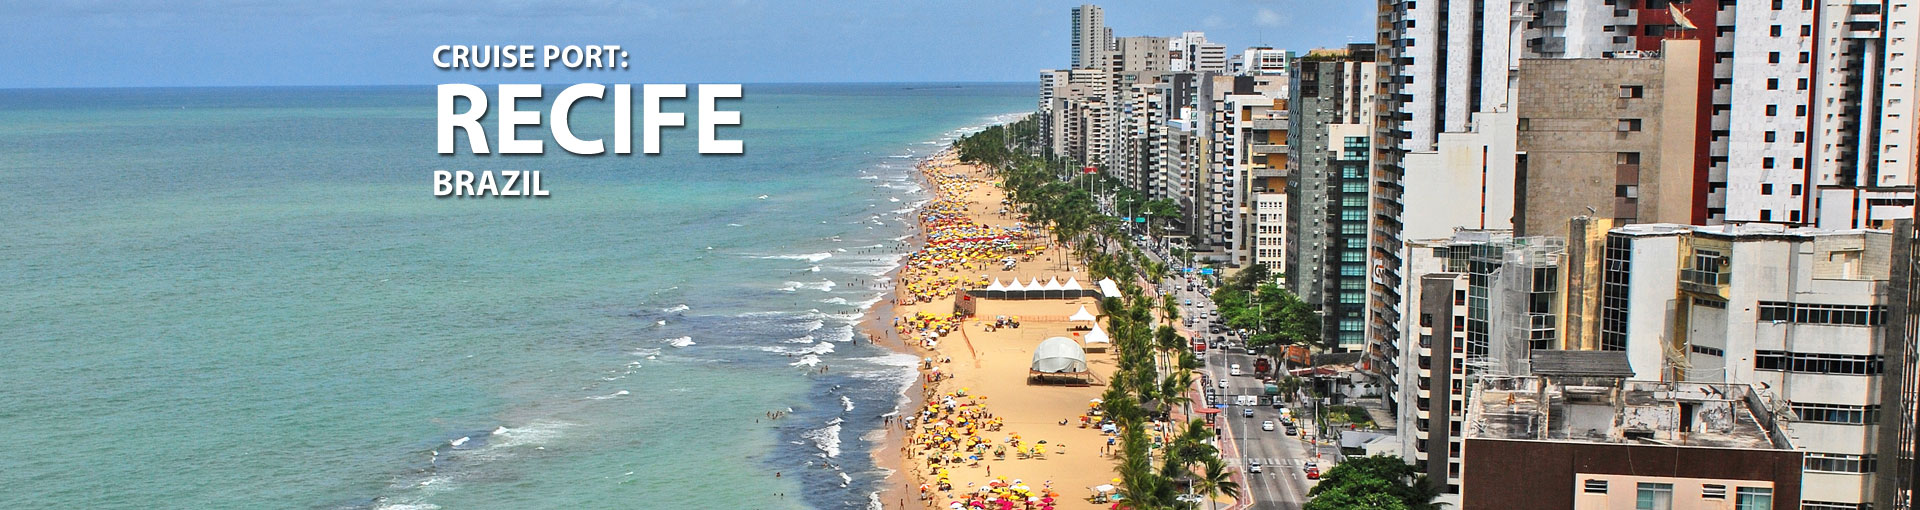 Cruises to Recife, Brazil